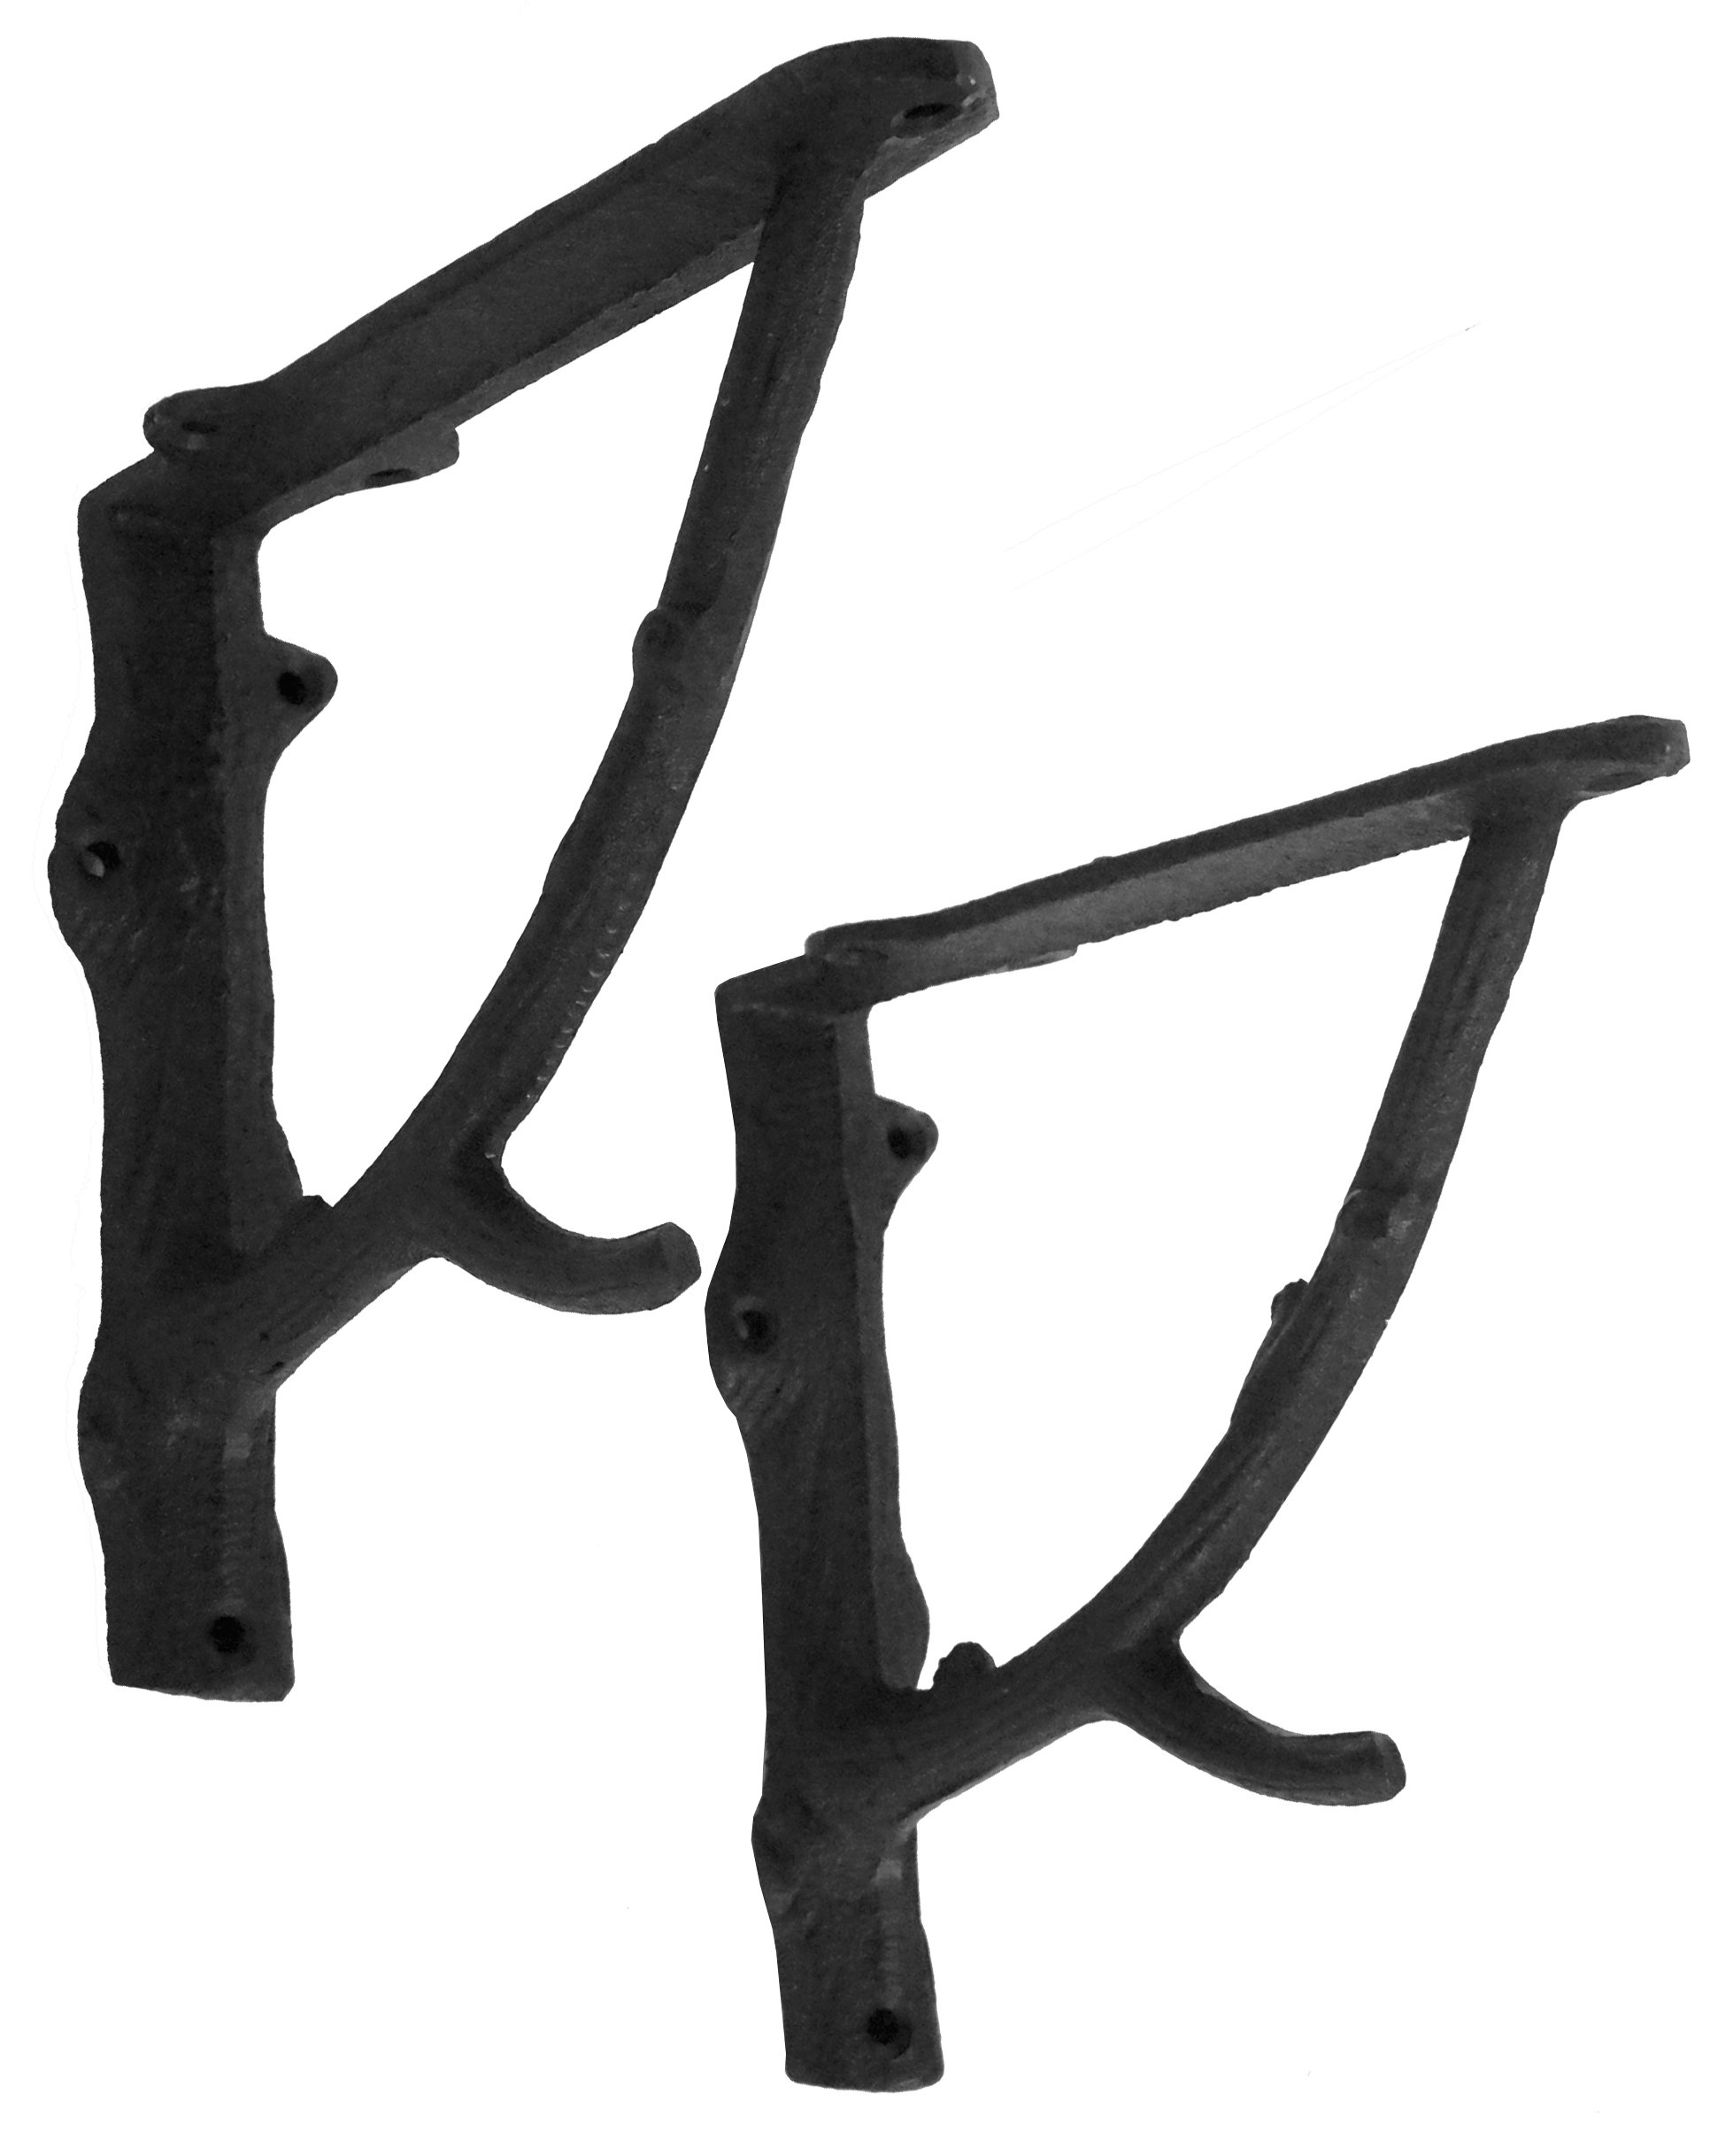 NACH js-90-078 Branch Wall Shelf Bracket 7''. Pack of 2 (7x2x7.3 inches)